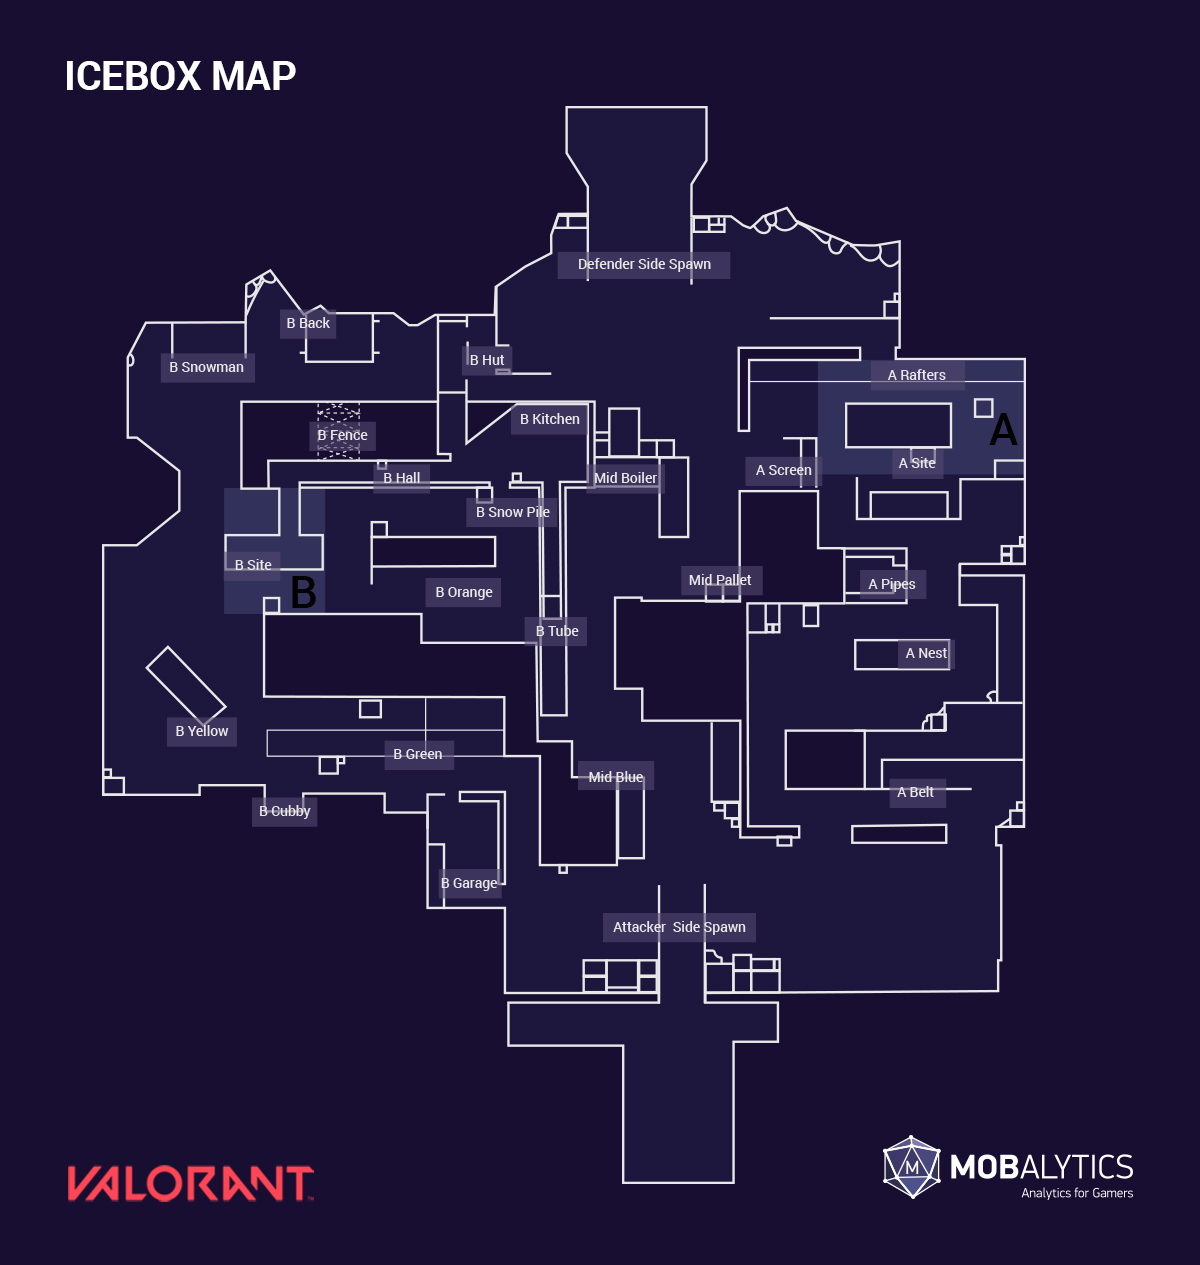 Icebox Map with callouts